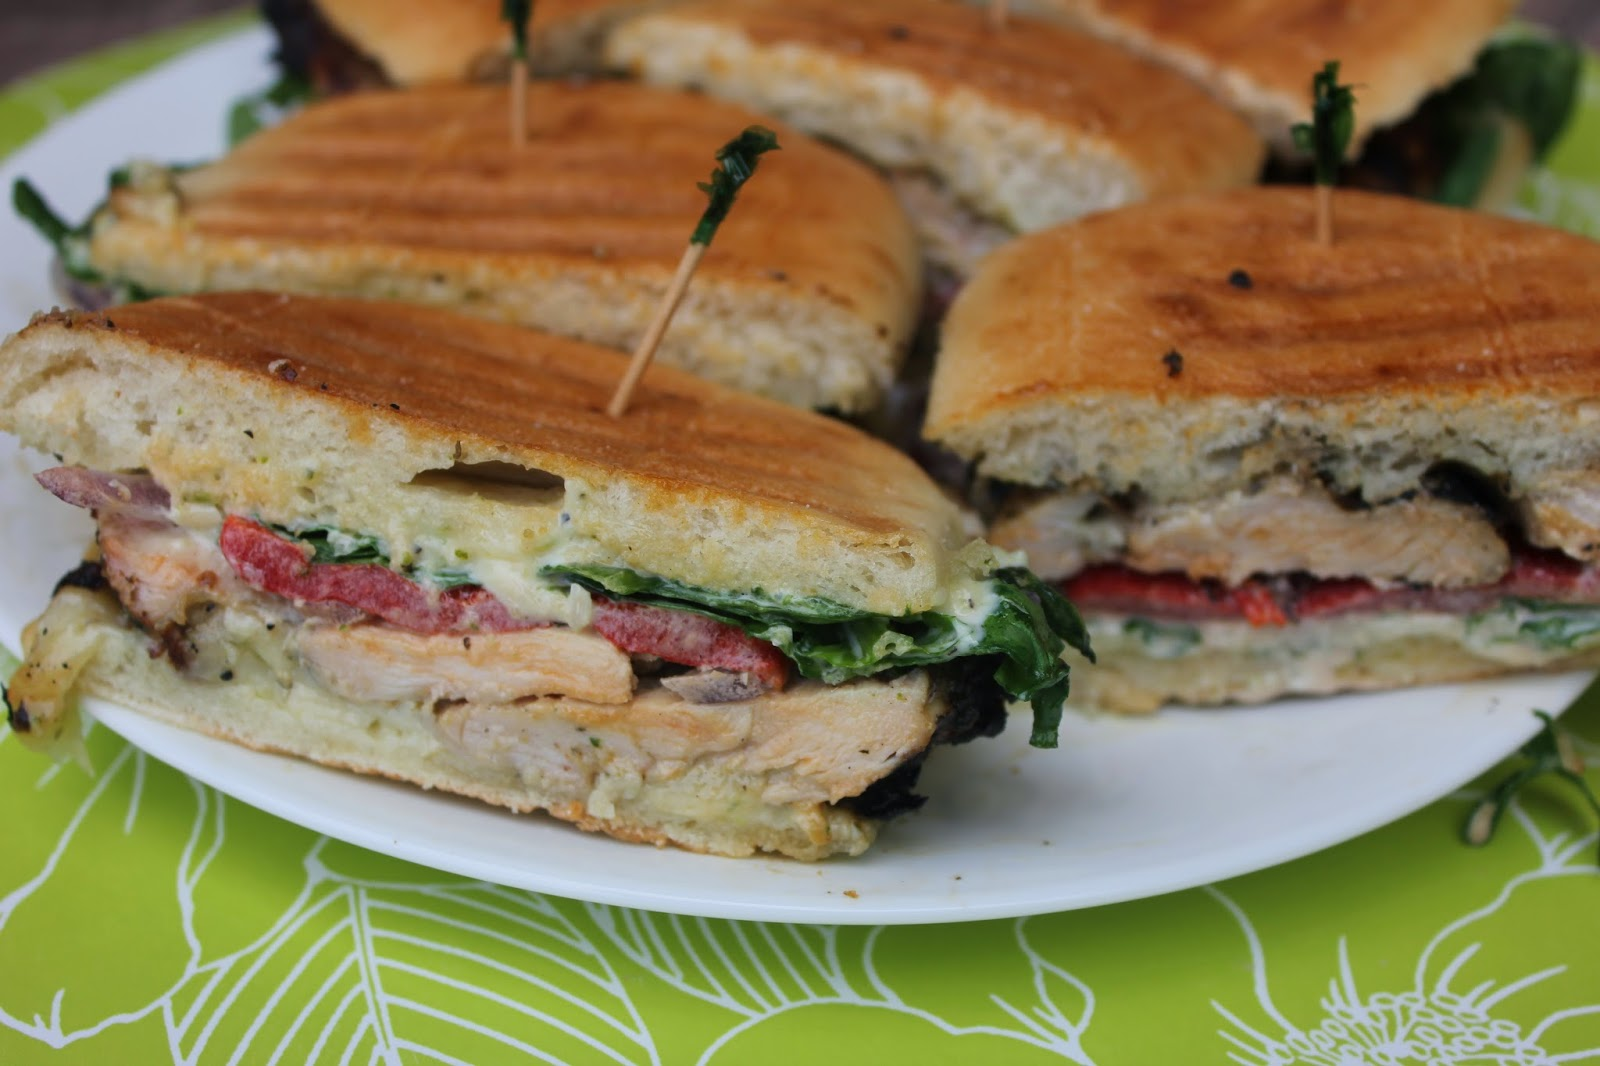 Recipe:  Chicken, Recipe:  Sandwiches, Easy Meal Ideas, easy marinade, Pesto Chicken and Red Pepper Paninis, favorite panini